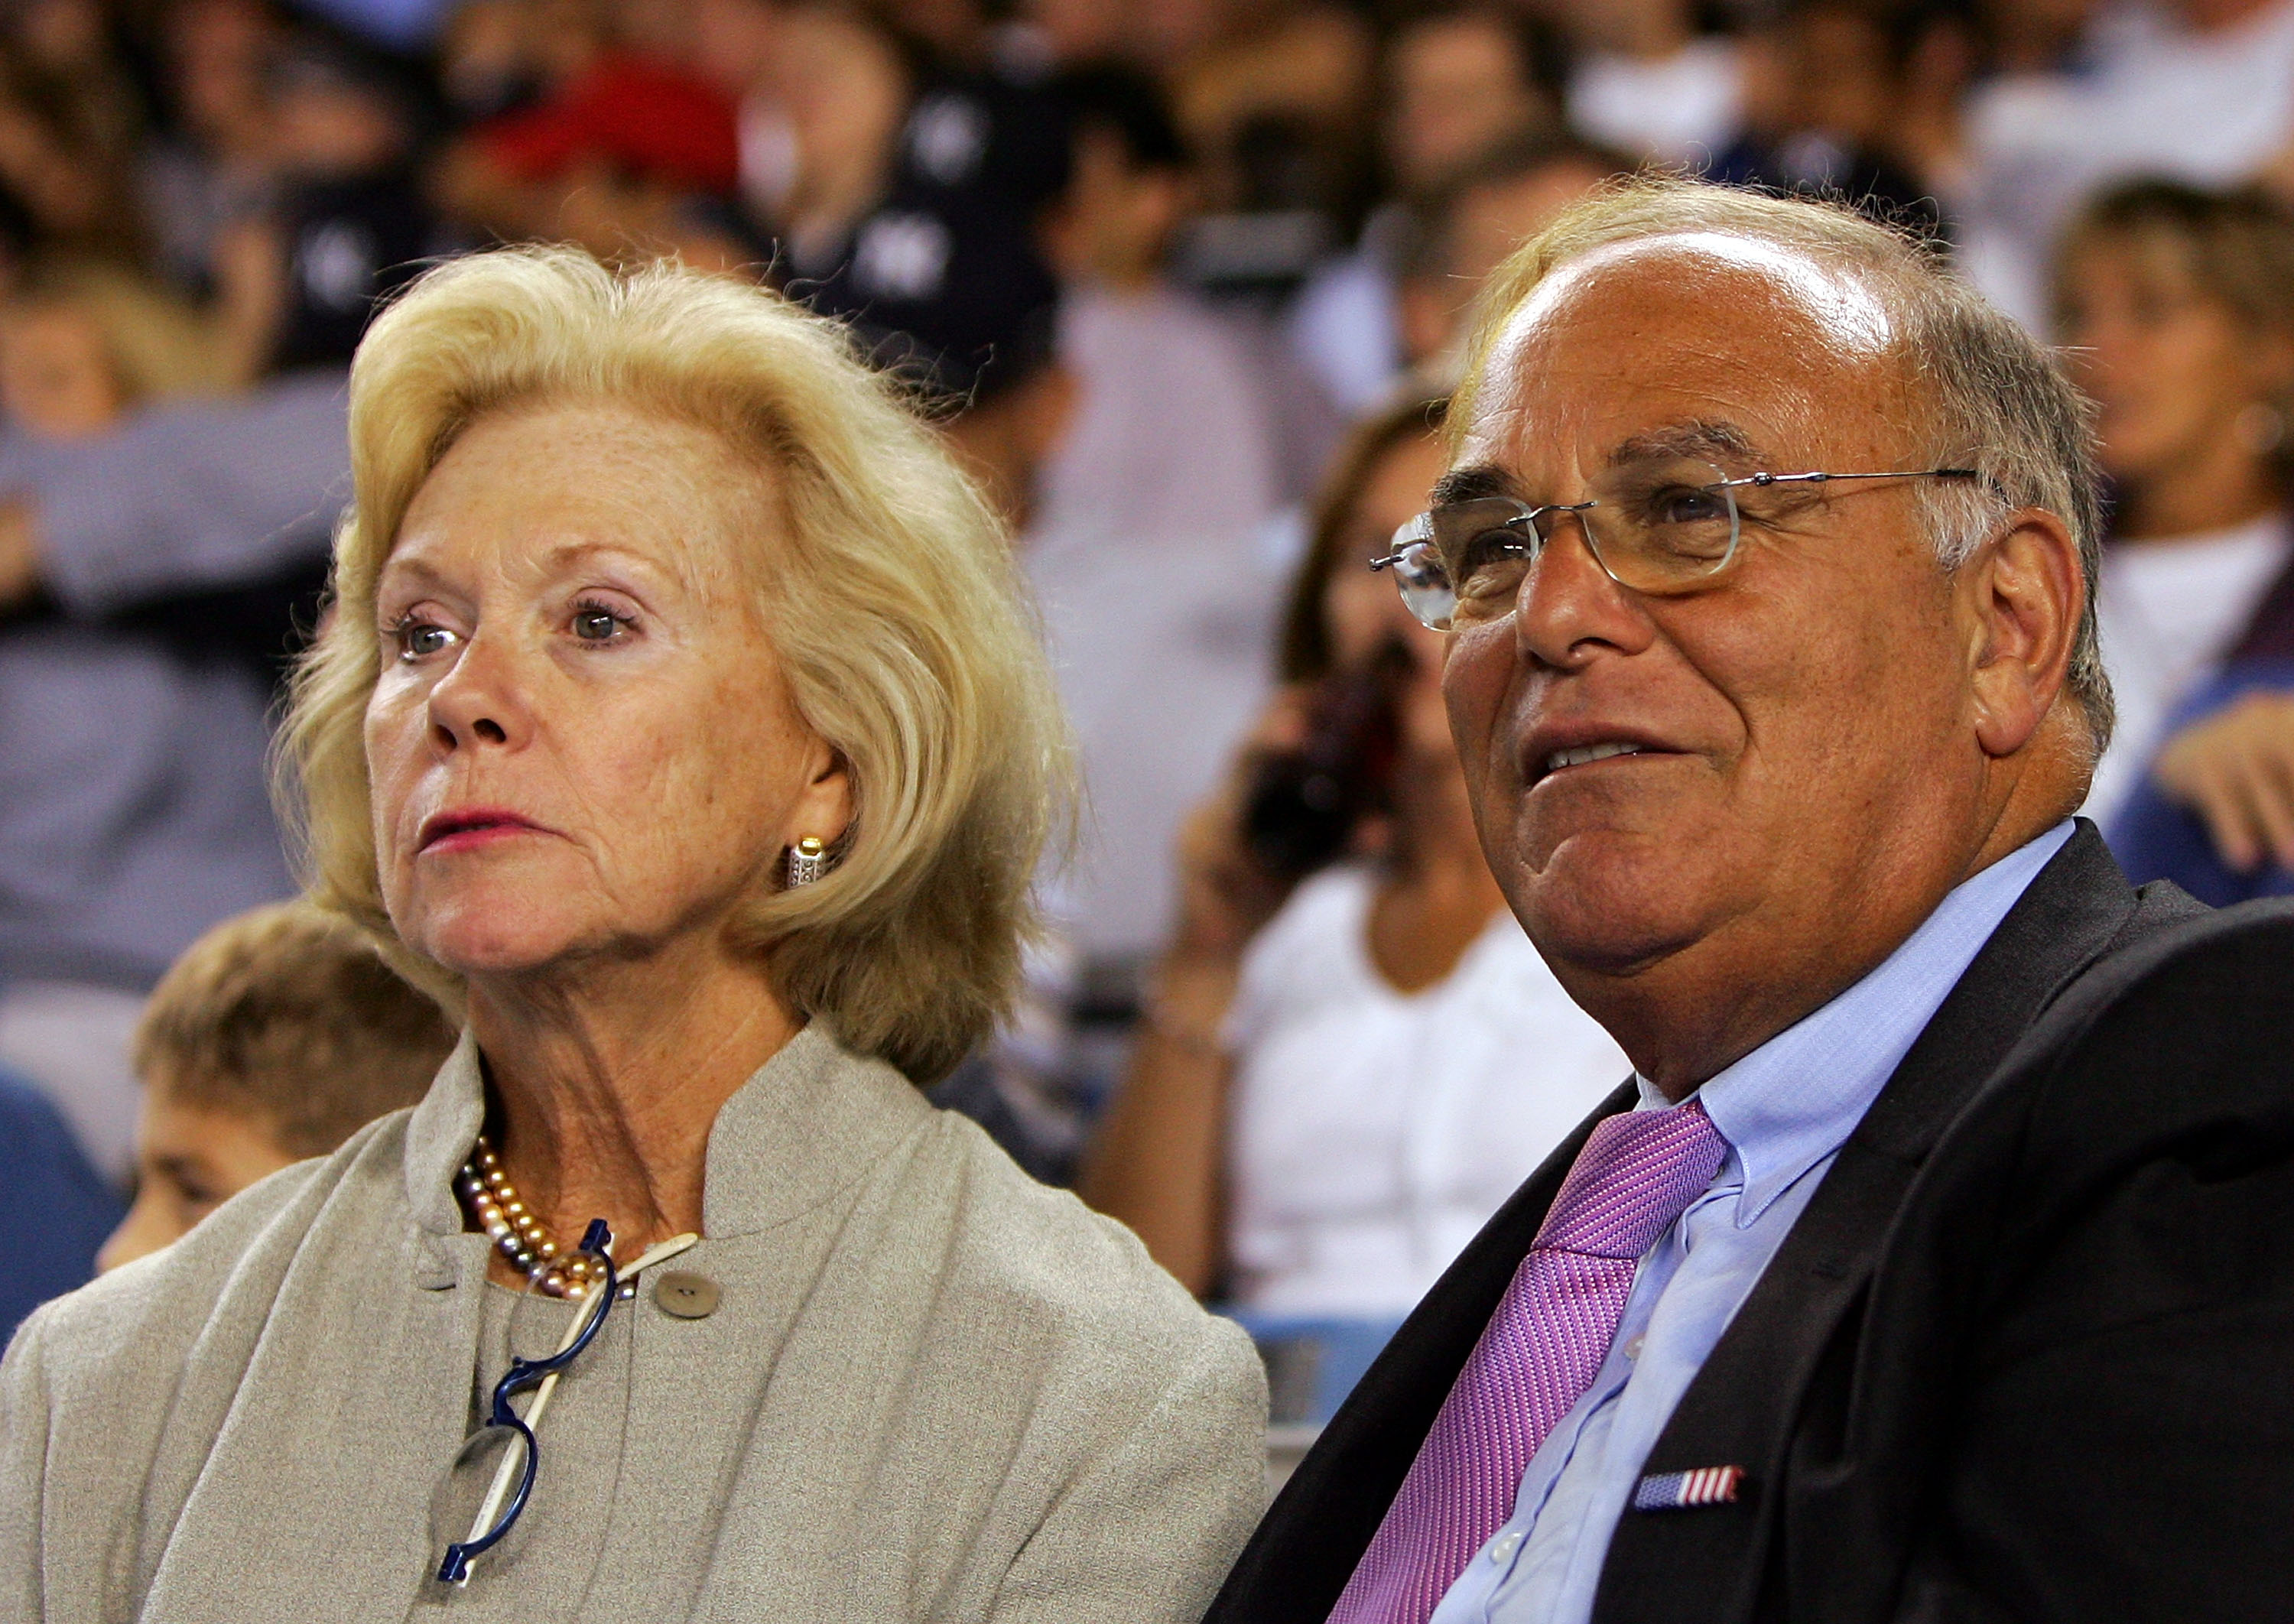 NEW YORK - SEPTEMBER 17:  Pennsylvania Gov. Ed Rendell attends the game between the New York Yankees and the Chicago White Sox with his wife Midge on September 17, 2008 at Yankee Stadium in the Bronx borough of New York City.  (Photo by Jim McIsaac/Getty